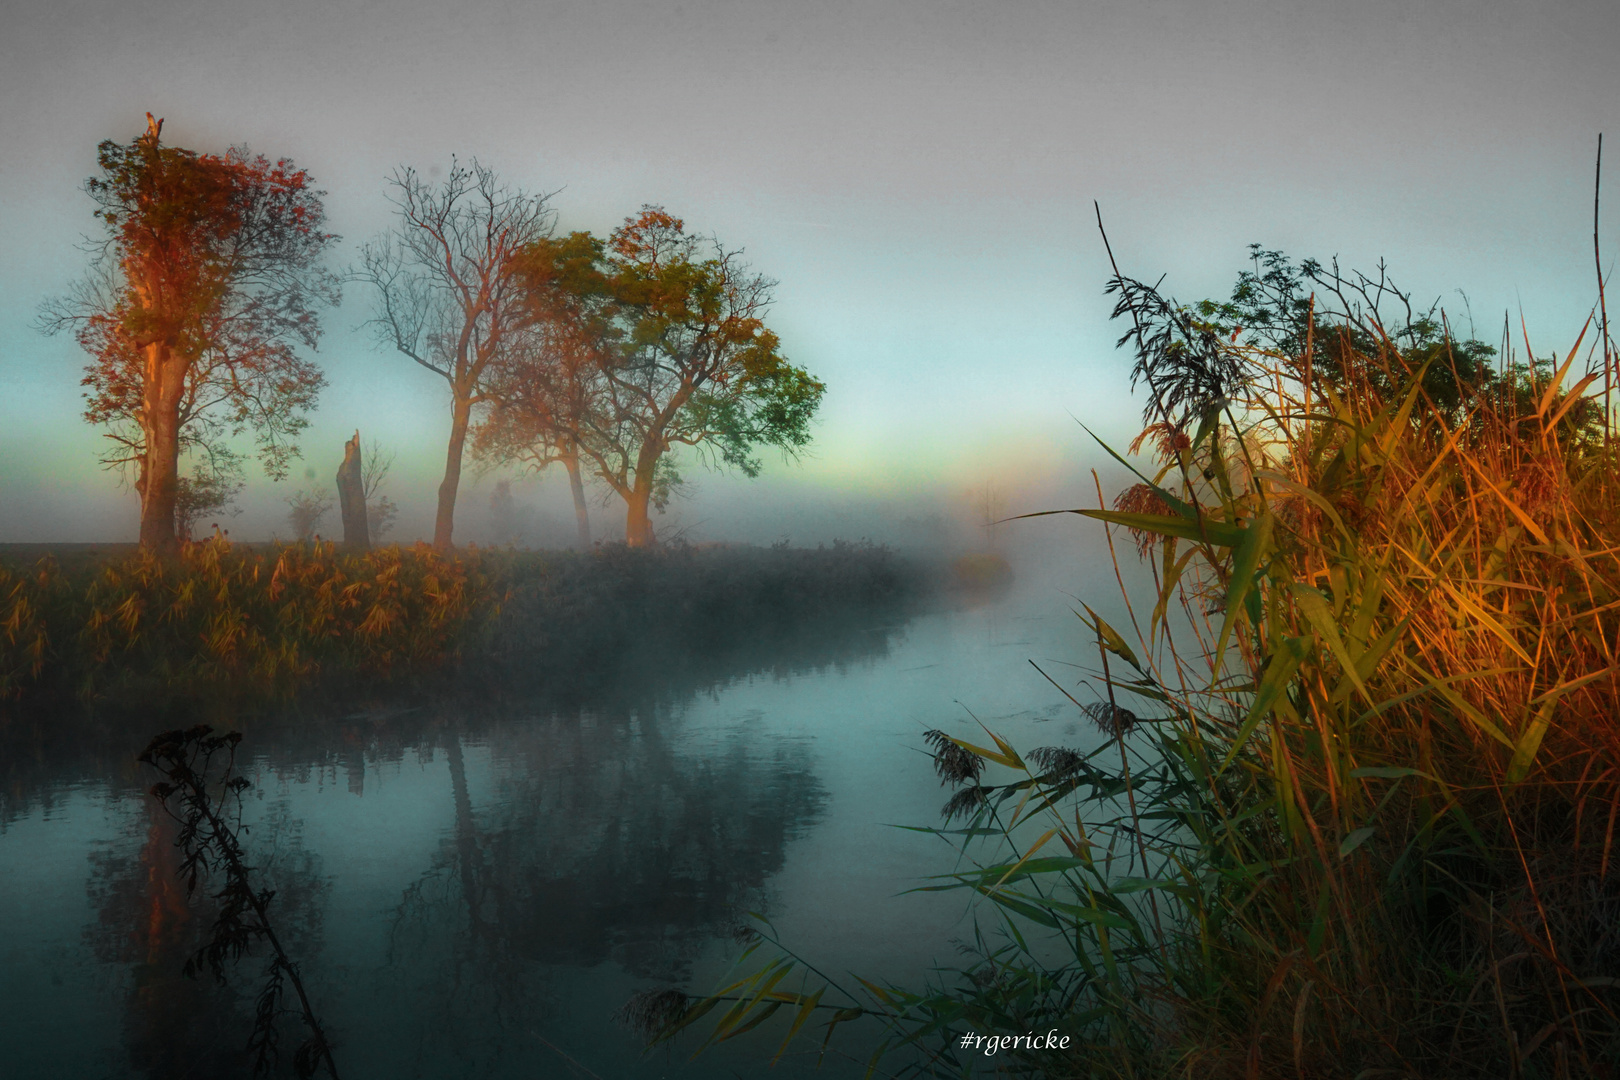 ... reflection in the fog